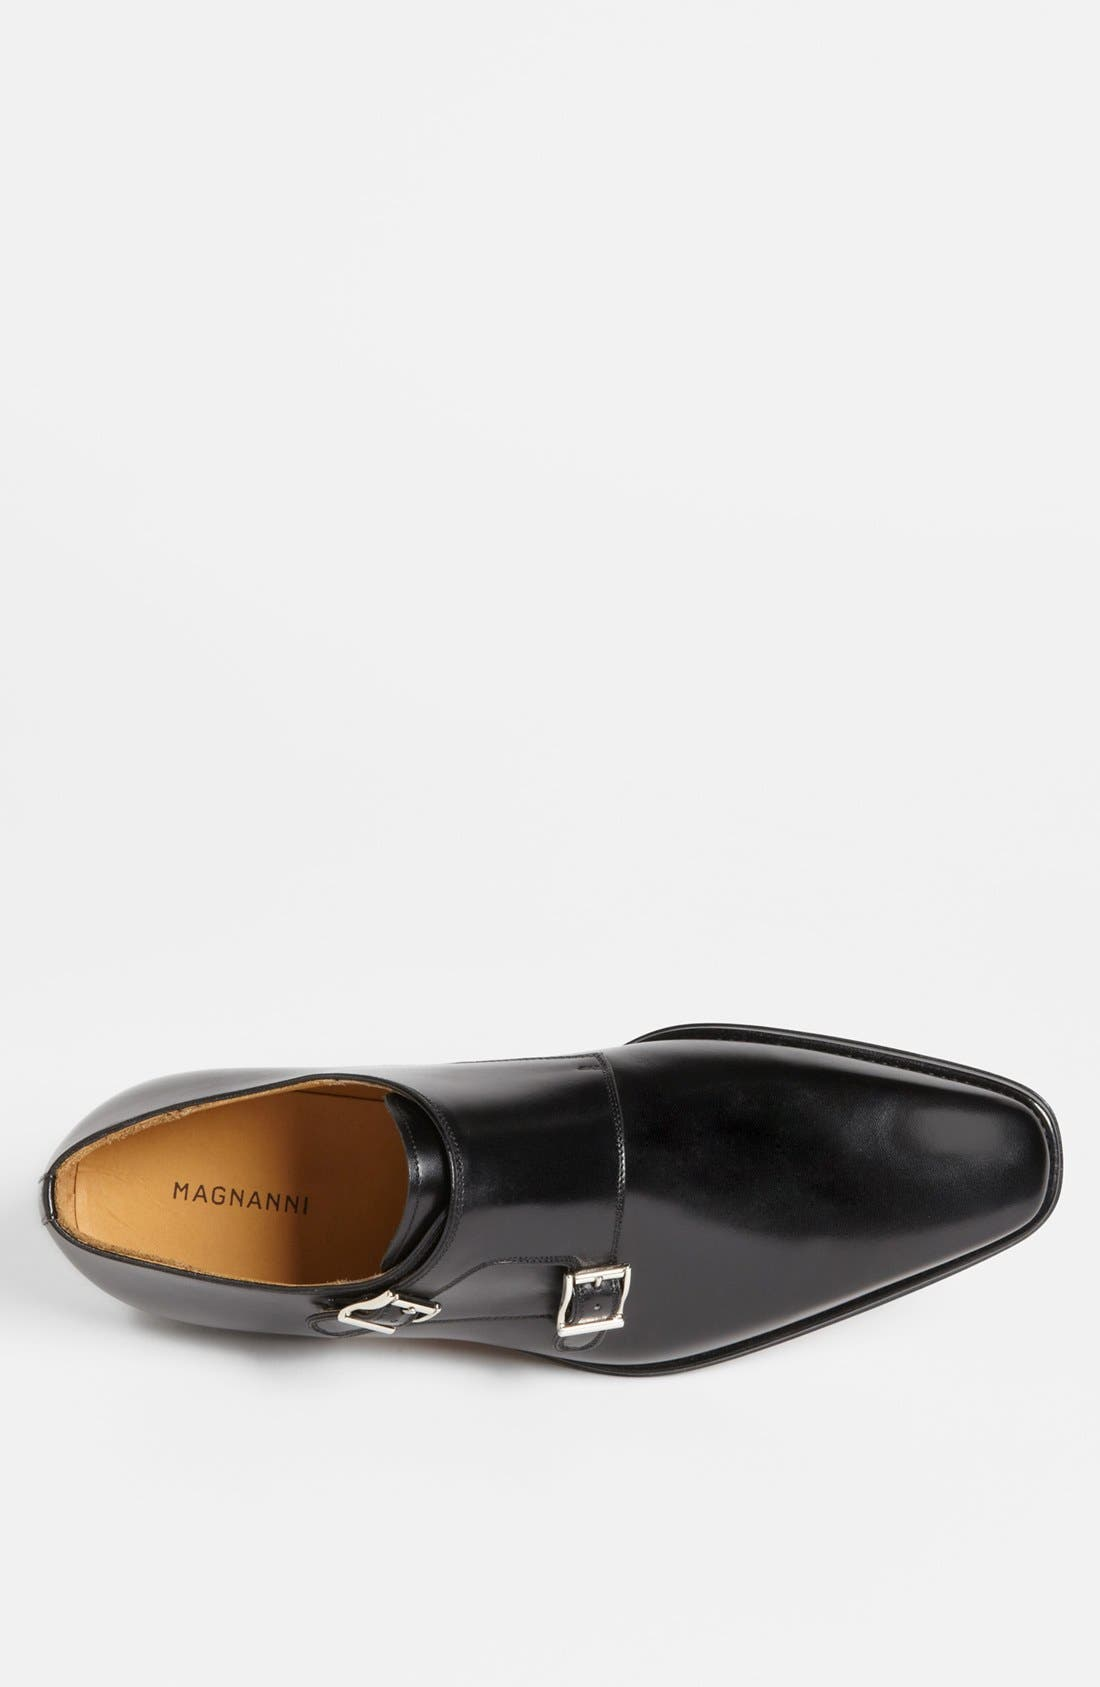 Alternate Image 4  - Magnanni 'Miro' Double Monk Strap Shoe (Men)